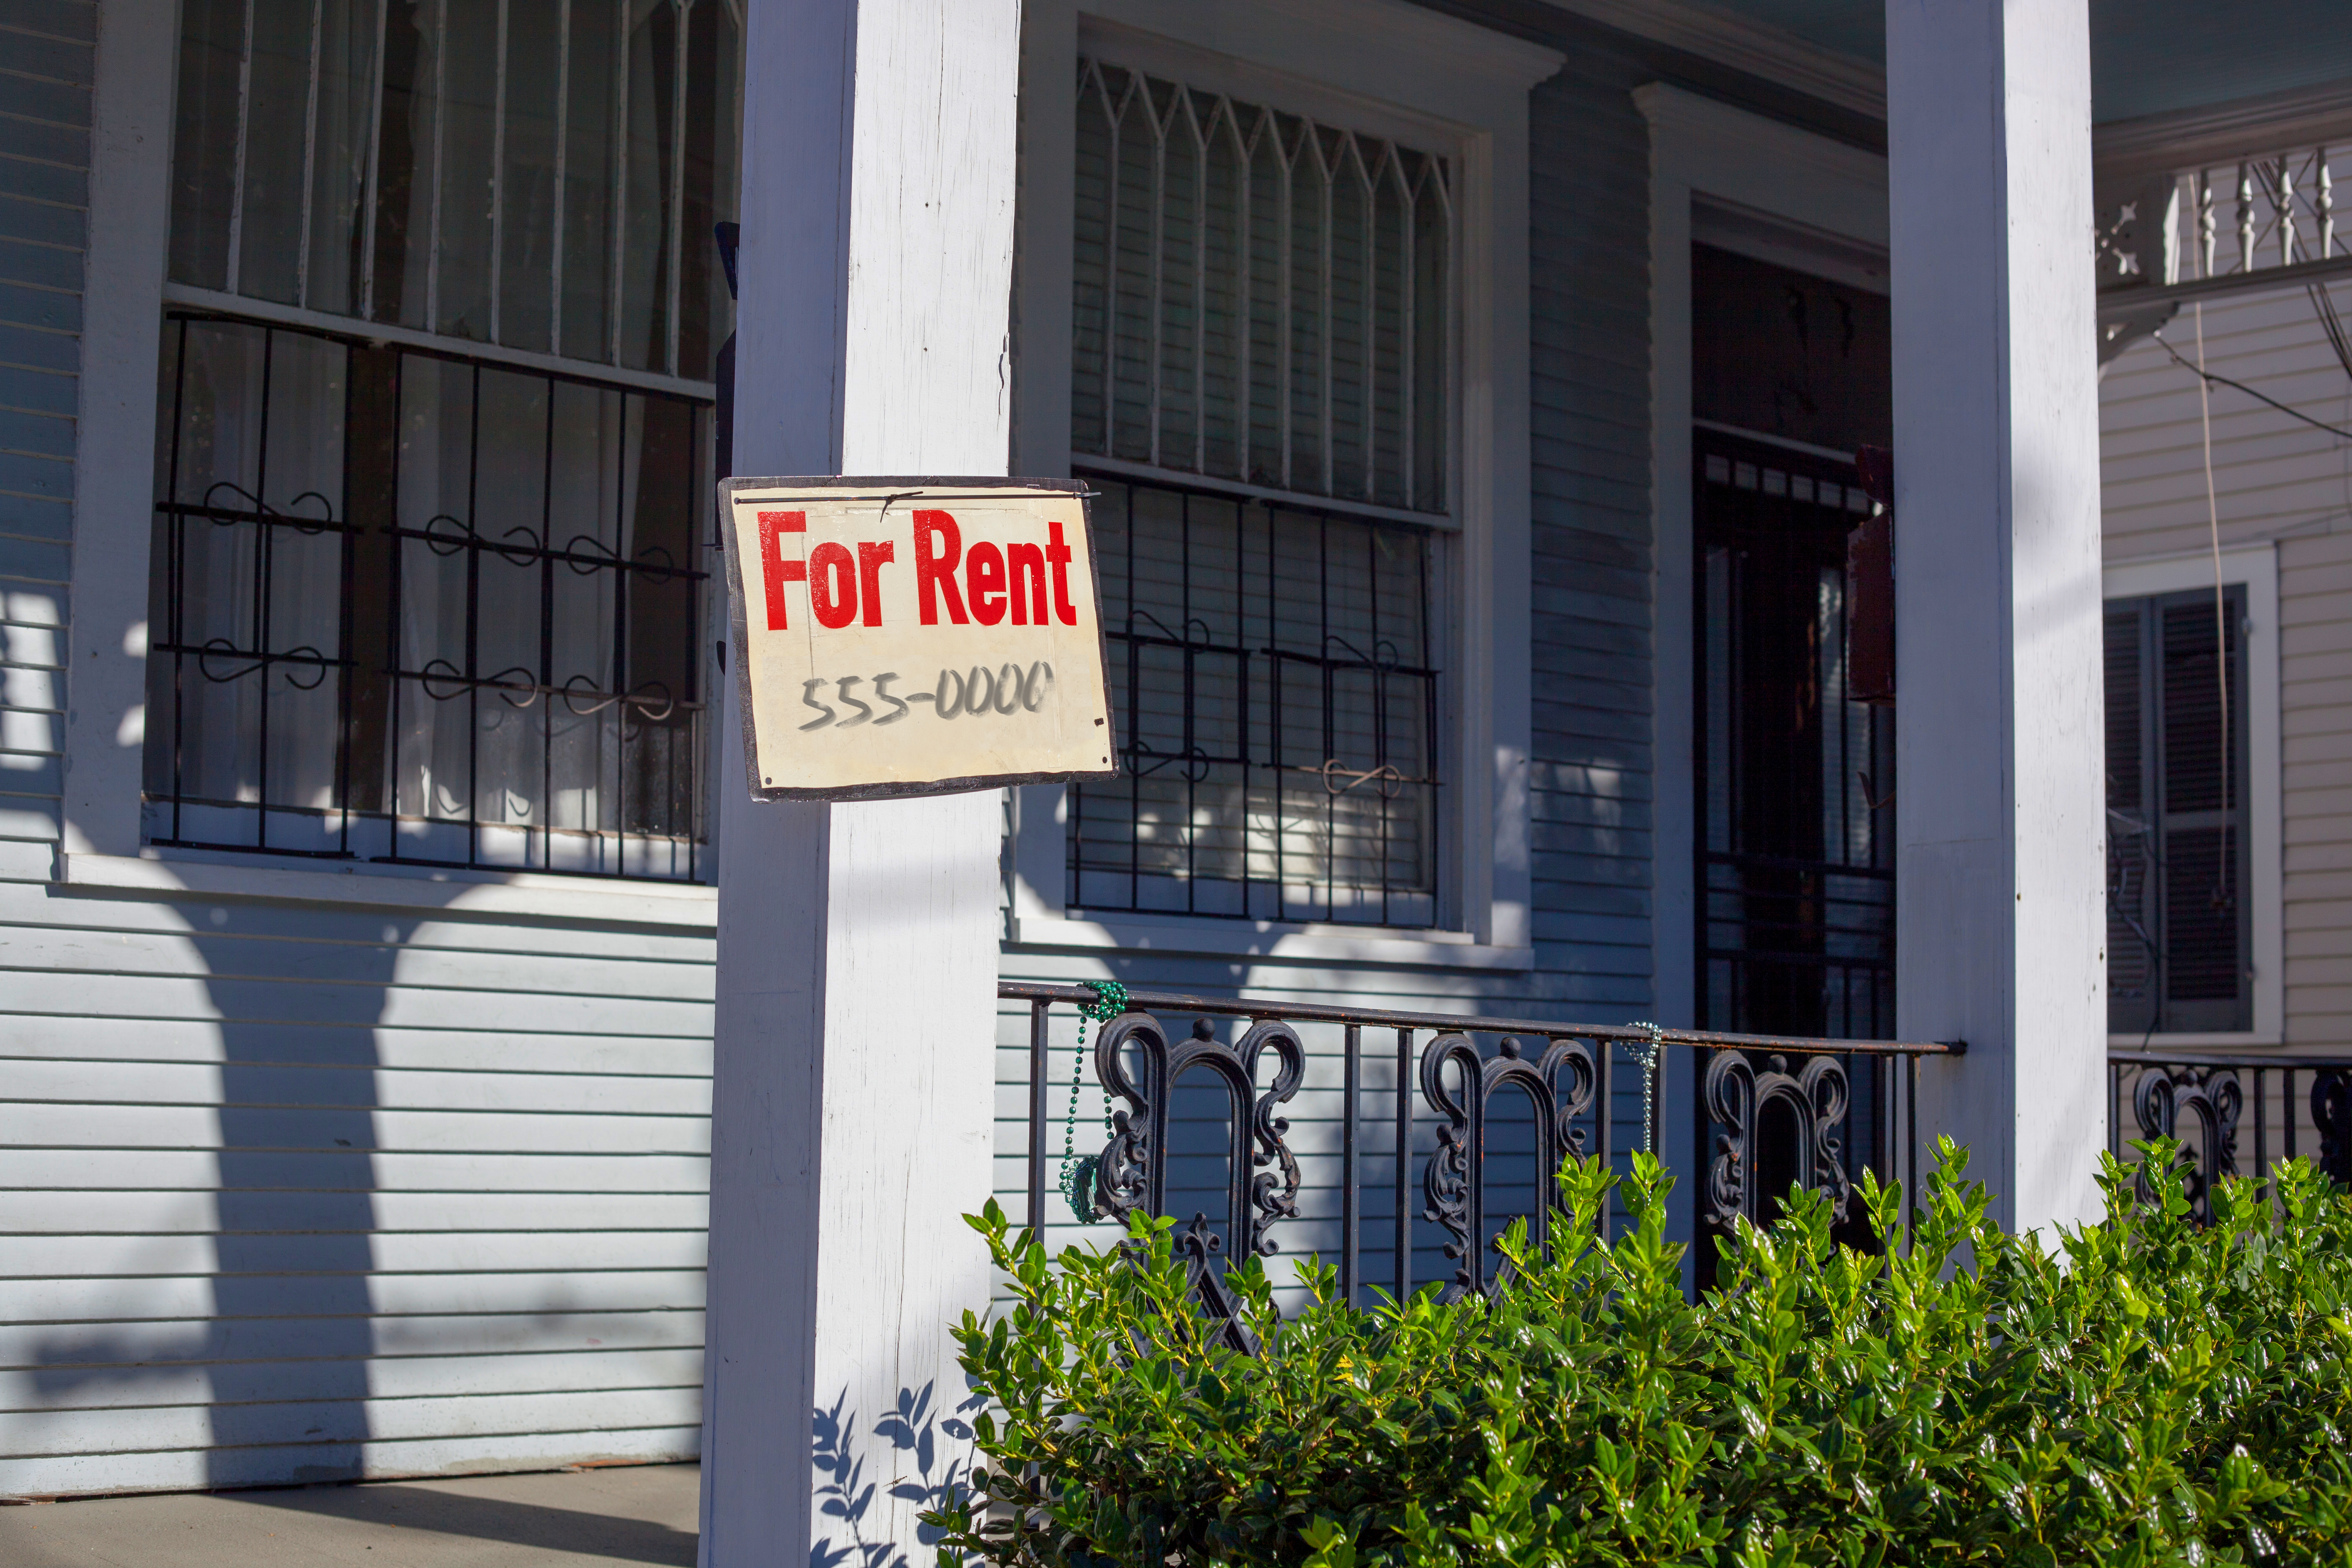 For Rent In New Orleans Curbed New Orleans